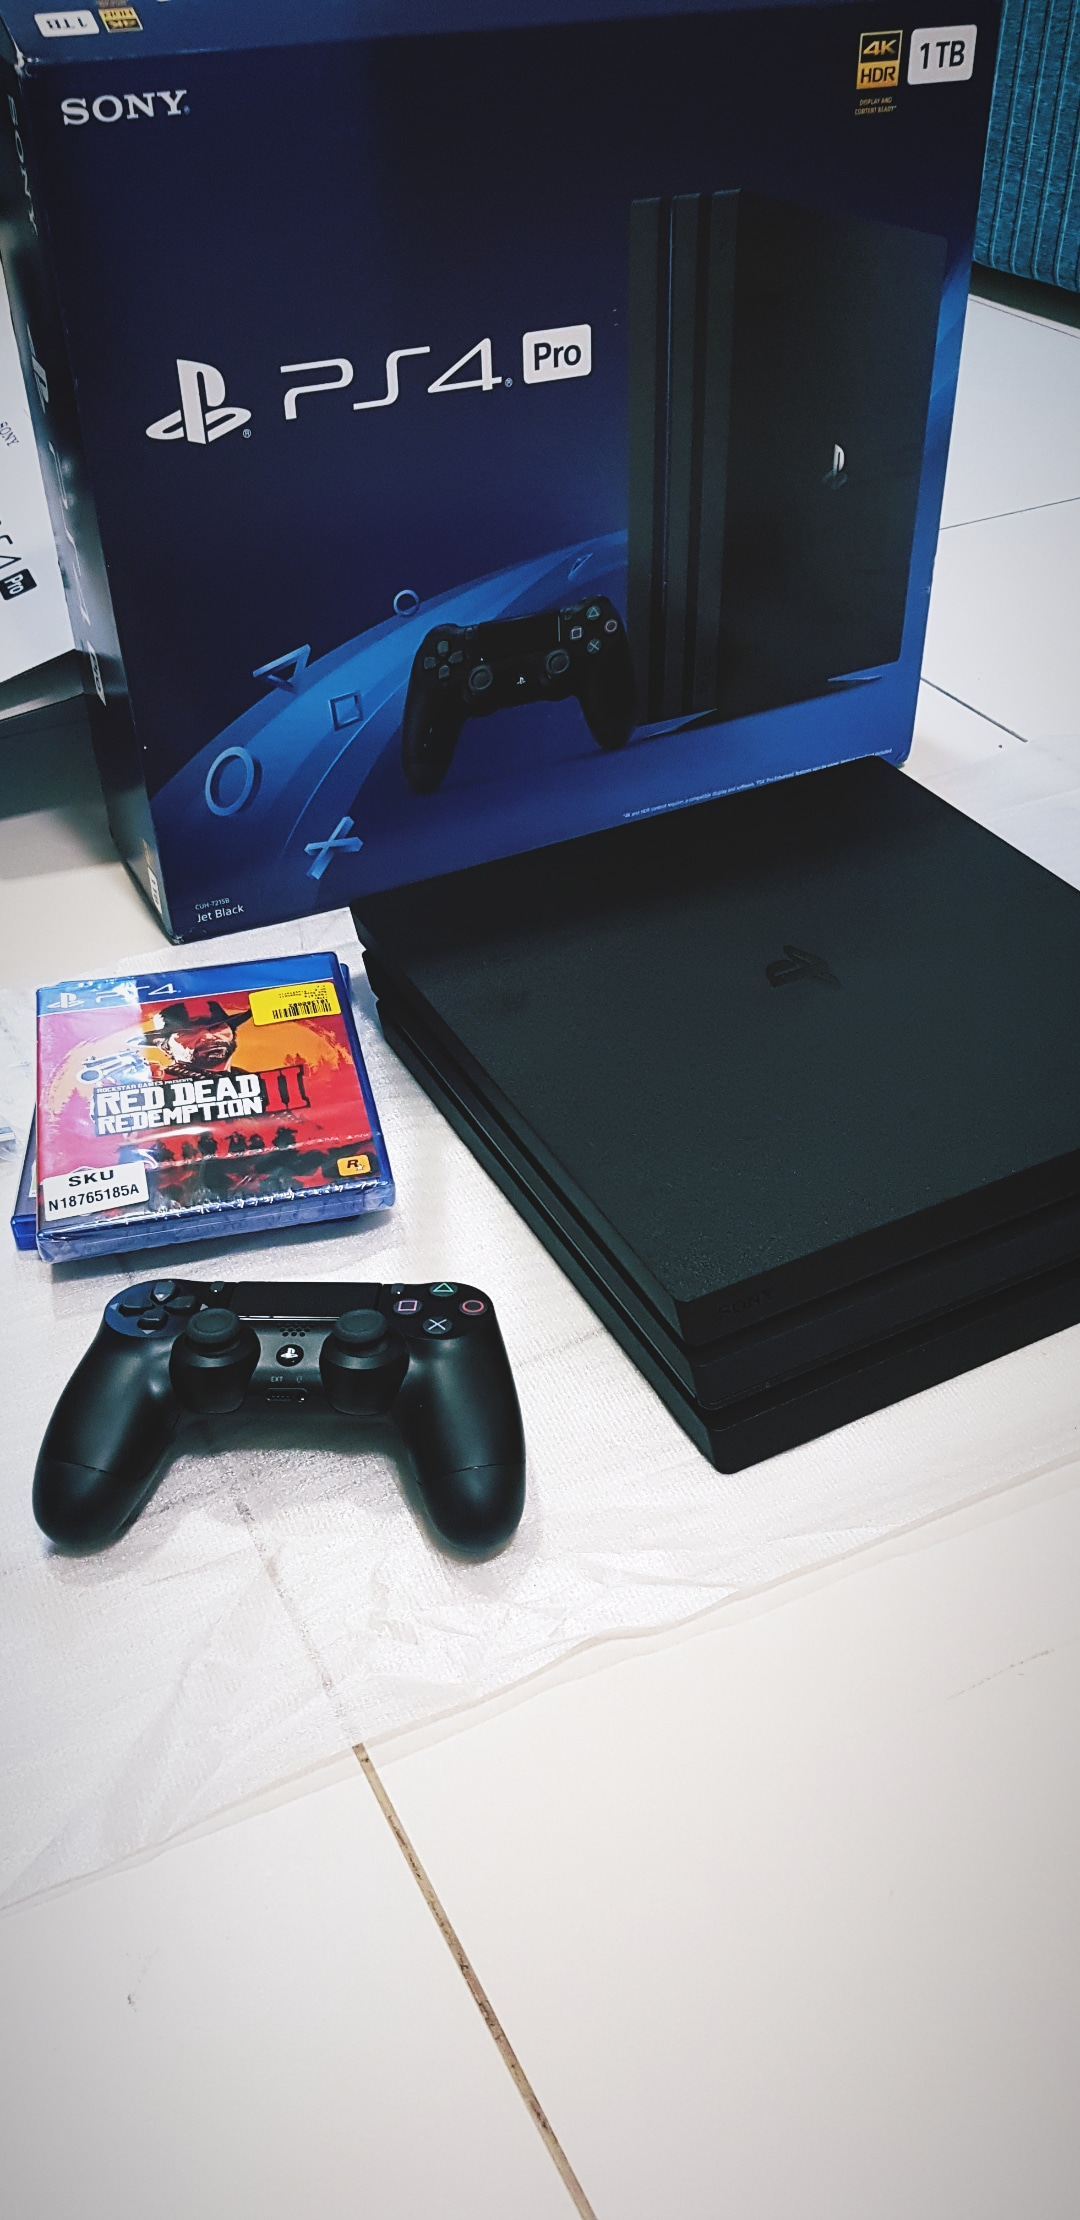 Thank You Everyone For Convincing Me To Go For The Pro Version Ps4pro